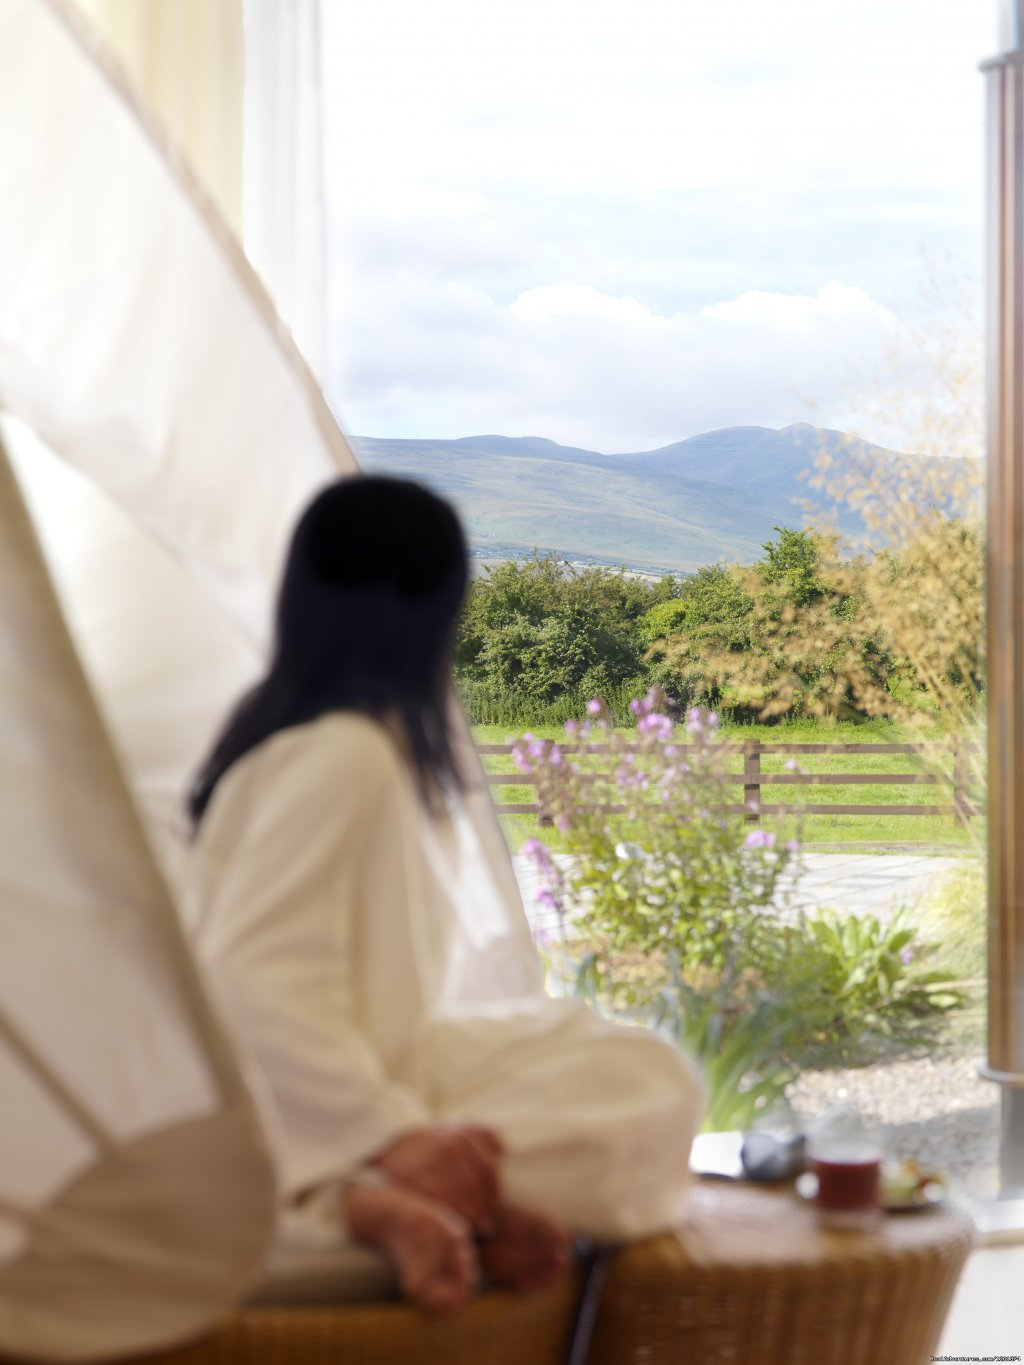 Family owned and operated House Hotel and Spa located on 6 acres of landscaped gardens. Situated with views of the Kerry mountains and a perfect base to explore the Dingle Peninsula and the Ring of Kerry